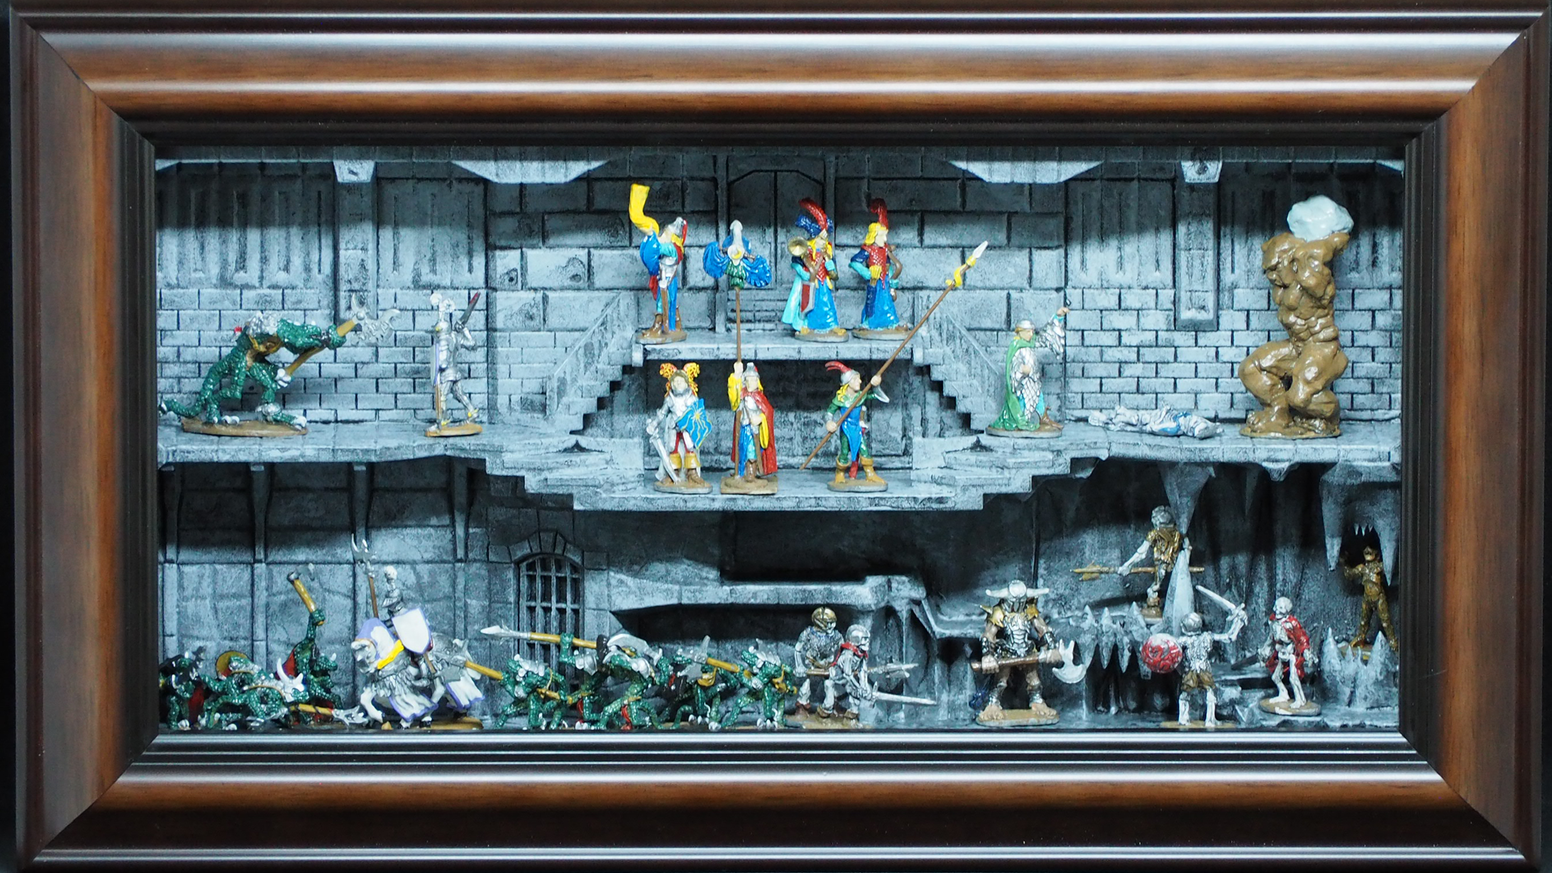 Display your game miniatures as art with these elegantly framed wall mounted display cases.